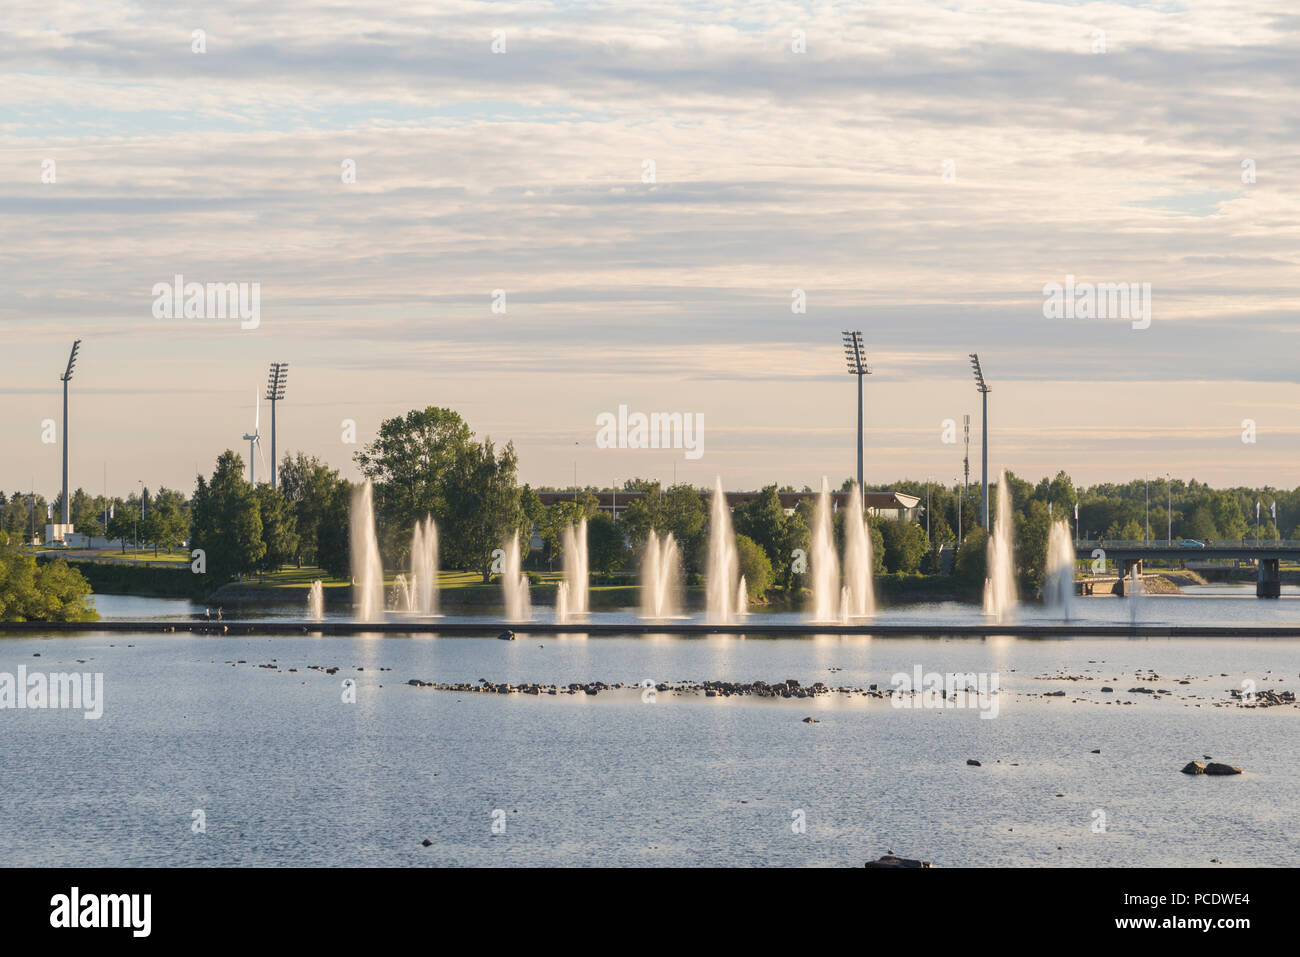 Fountains in Oulu, Finland - Stock Image